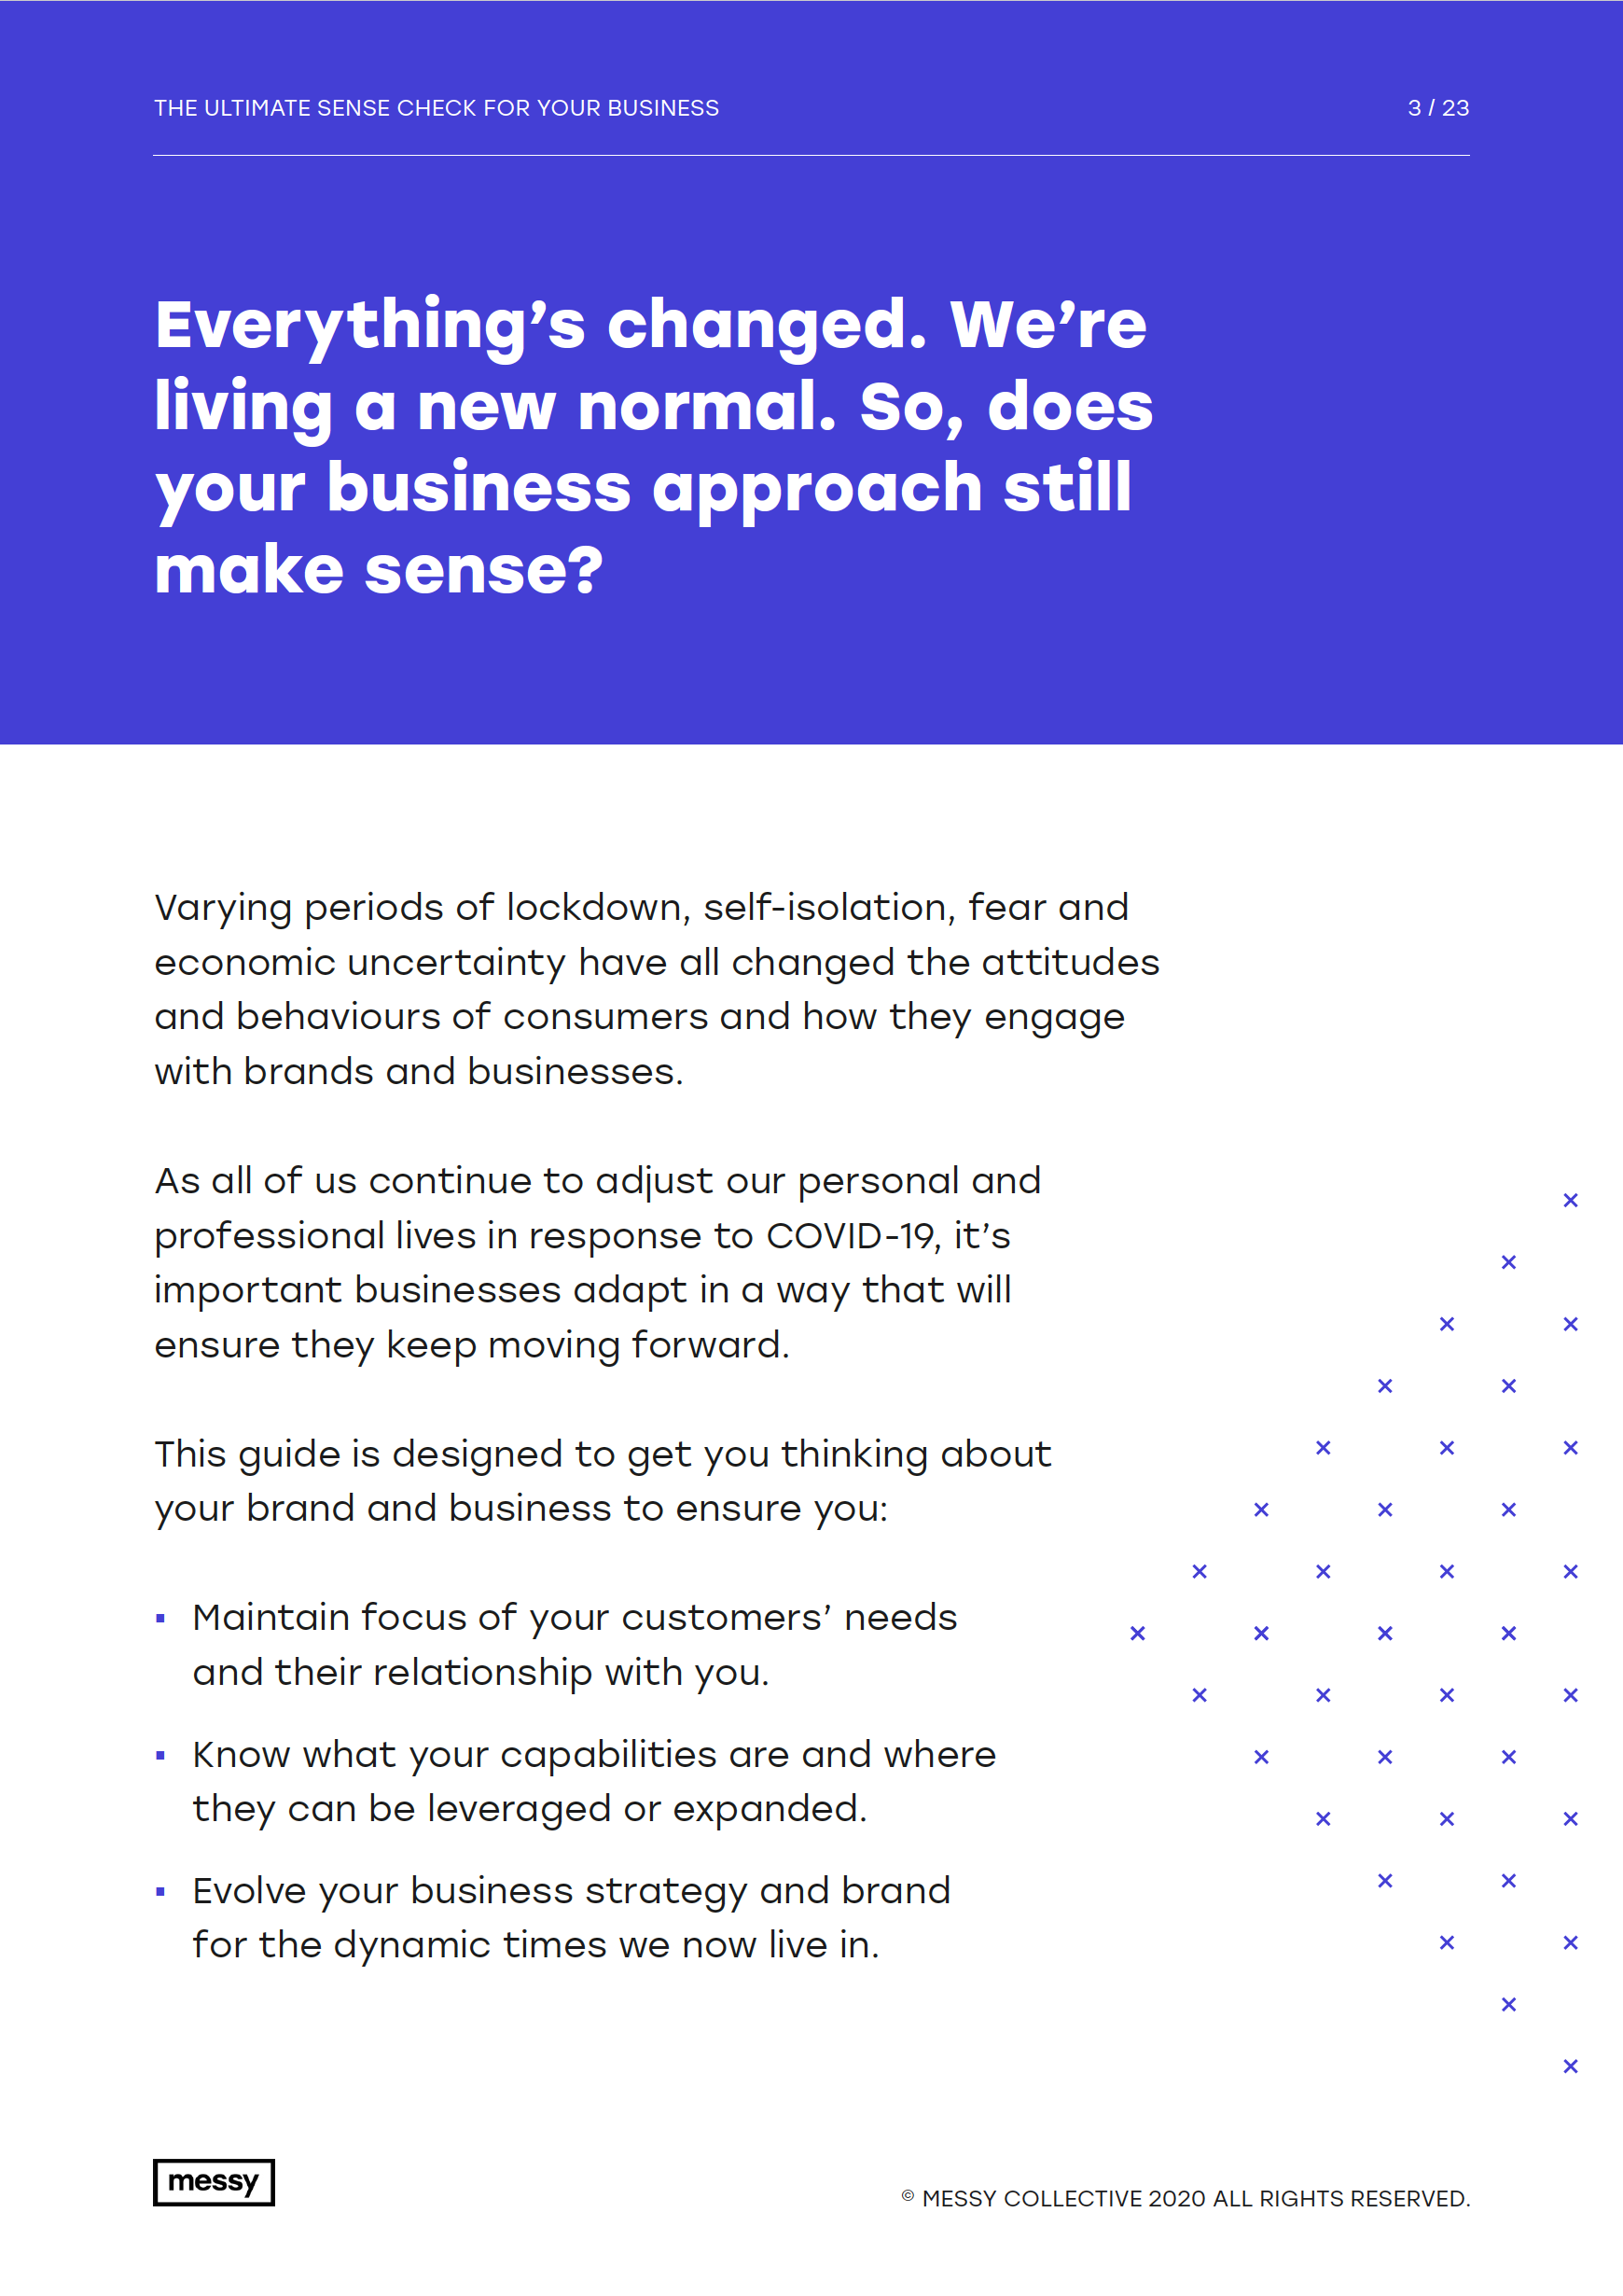 The Ultimate Sense Check for your Business guide - page 3